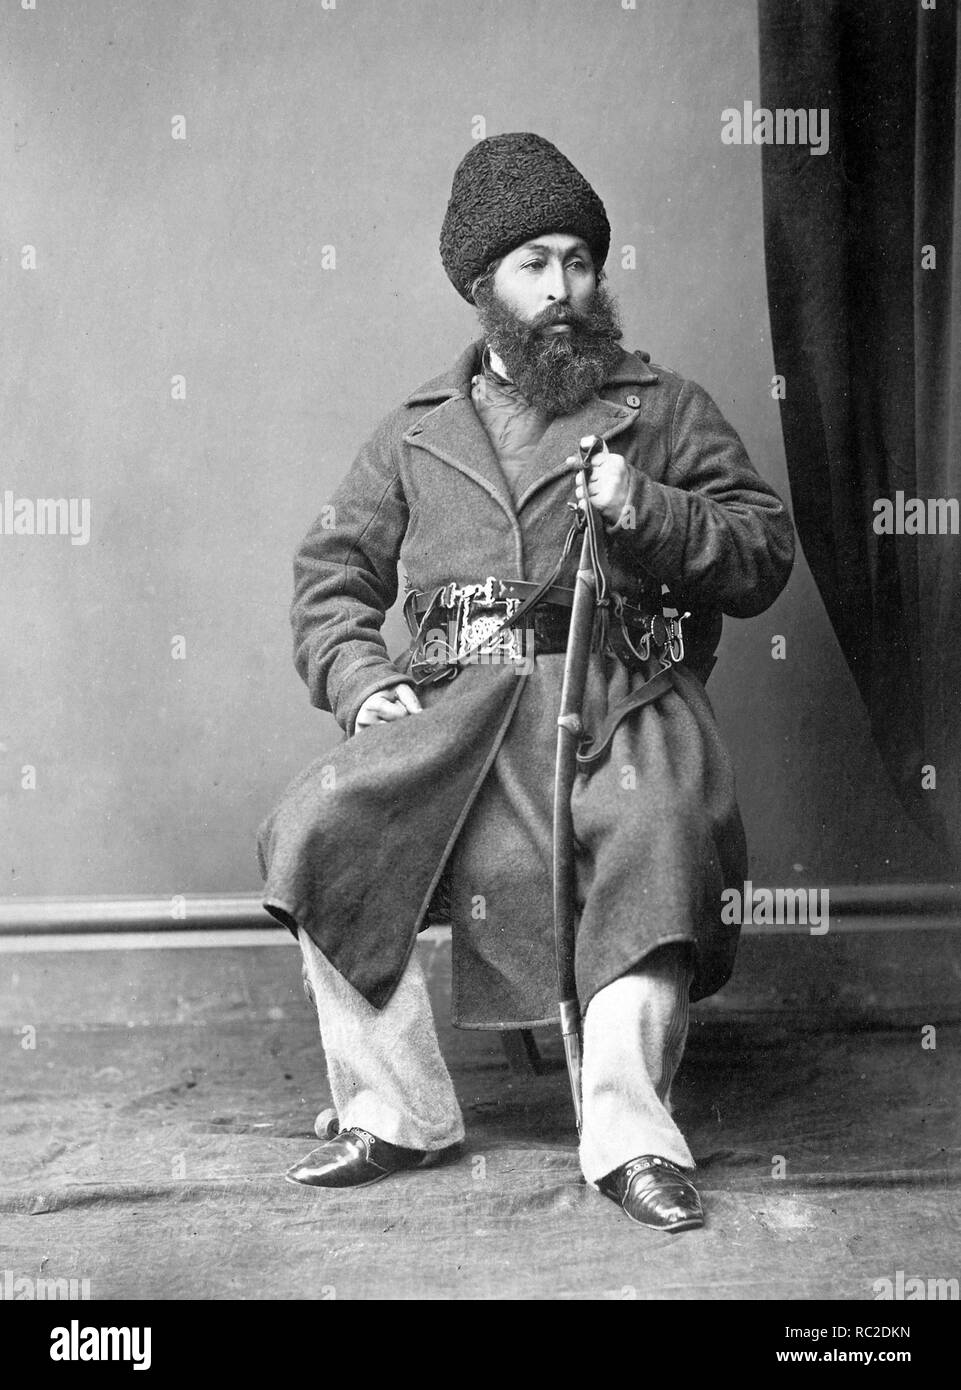 Sher Ali Khan (1825 – 1879) Amir of Afghanistan from 1863 to 1866 and from 1868 until his death in 1879, founder of the Barakzai Dynasty in Afghanistan. - Stock Image